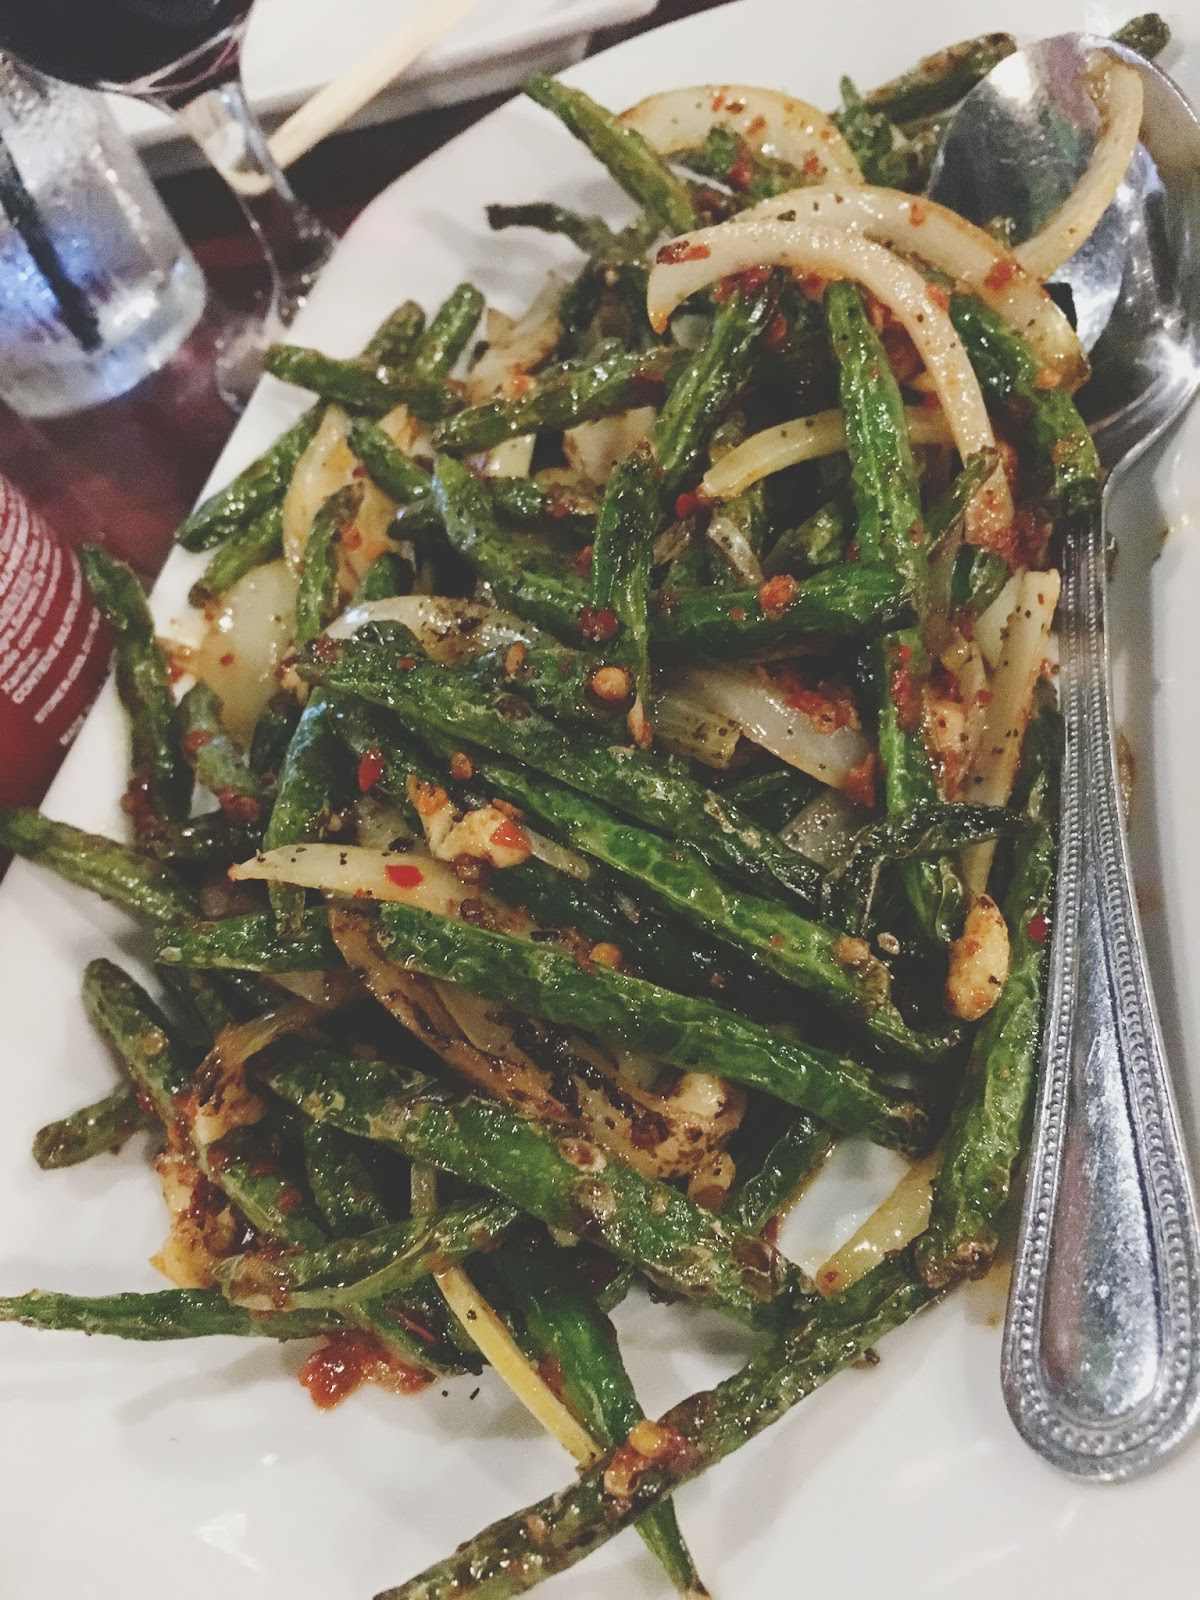 string beans at Vietnam Restaurant in Houston, Texas